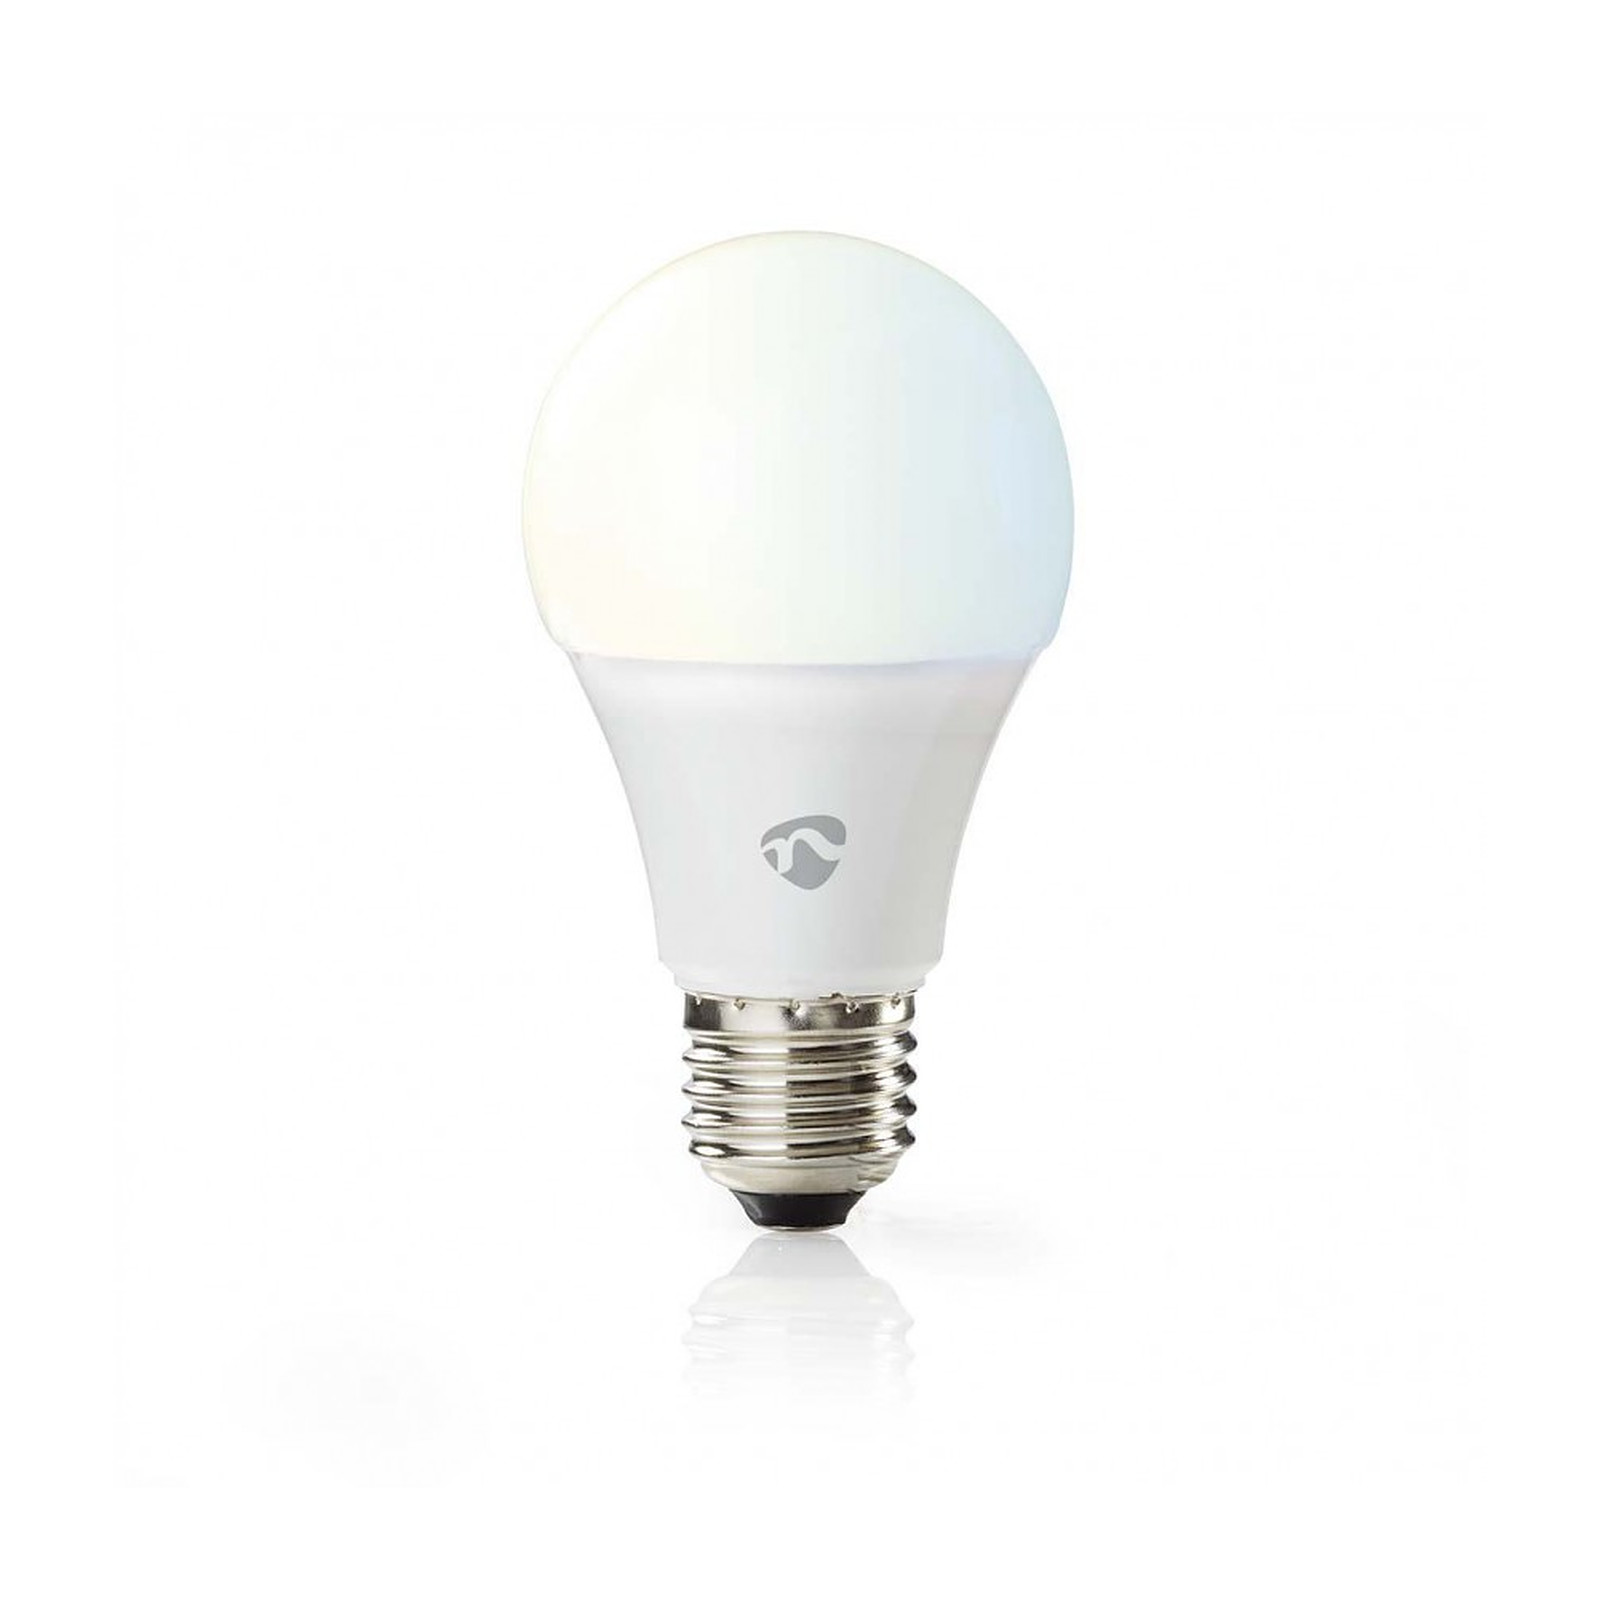 NEDIS Ampoule LED Intelligente W10 Wi-Fi